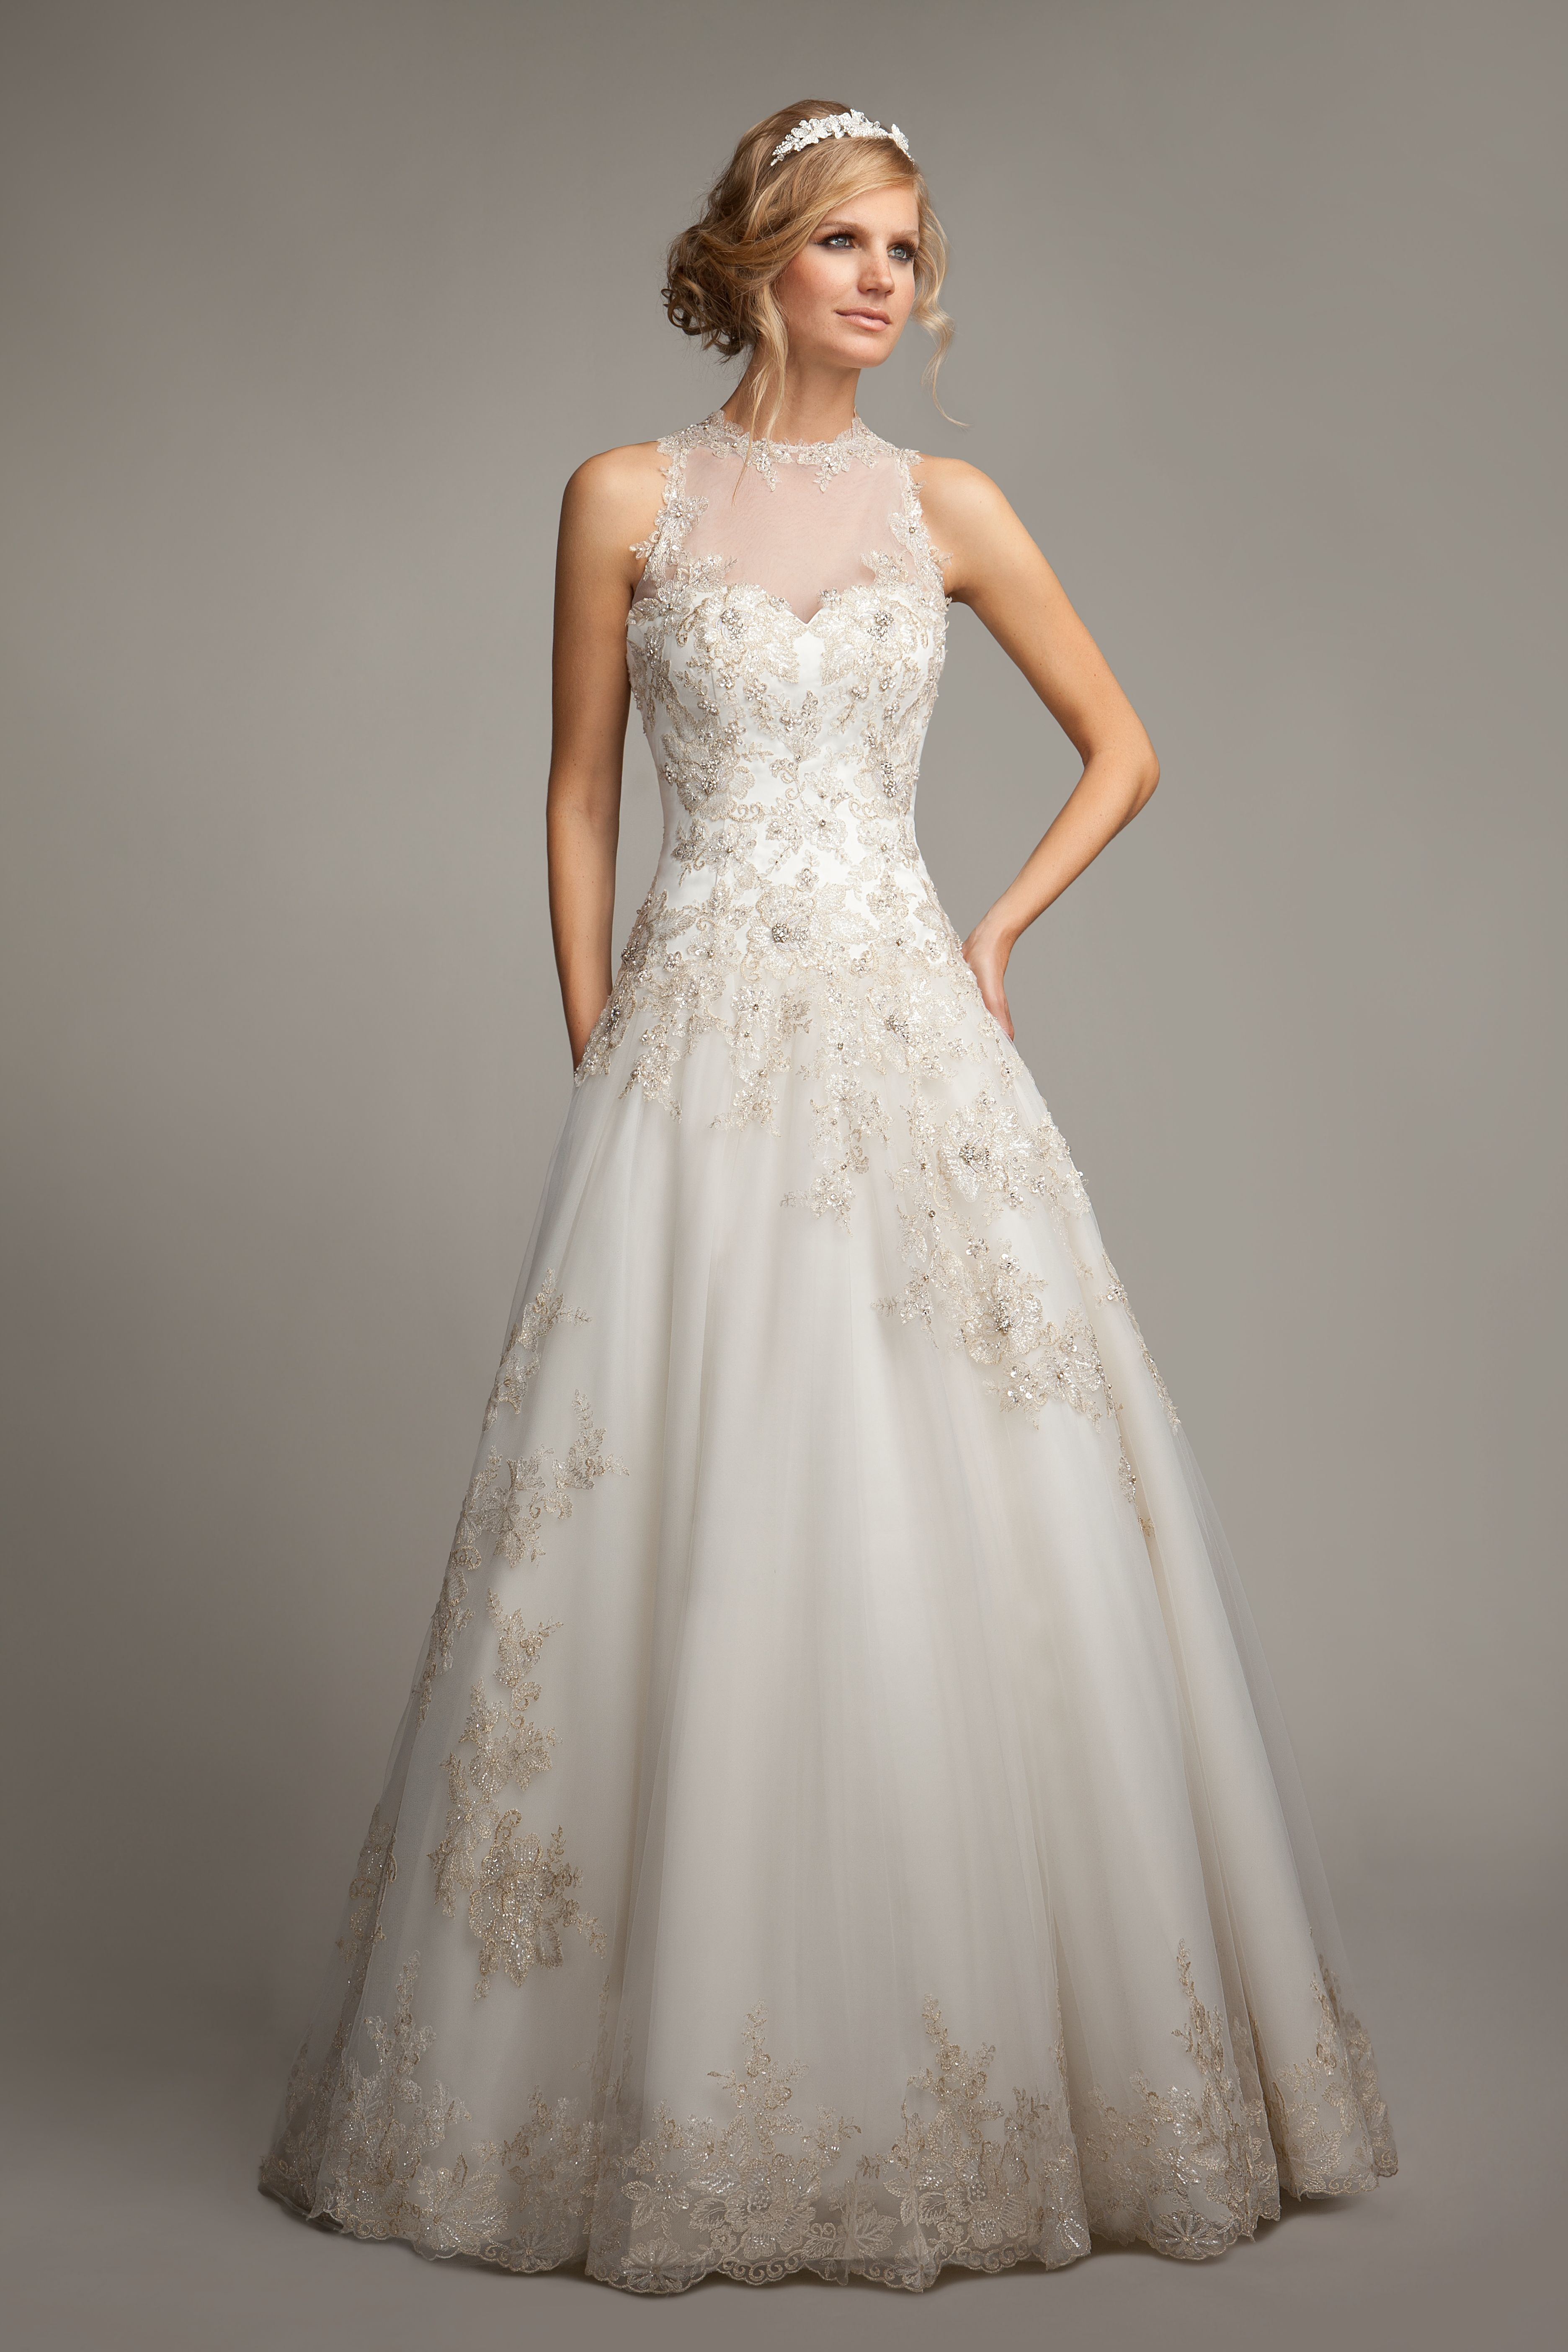 Mark Lesley 7150 | Our Mark Lesley Bridal Collection | Pinterest ...